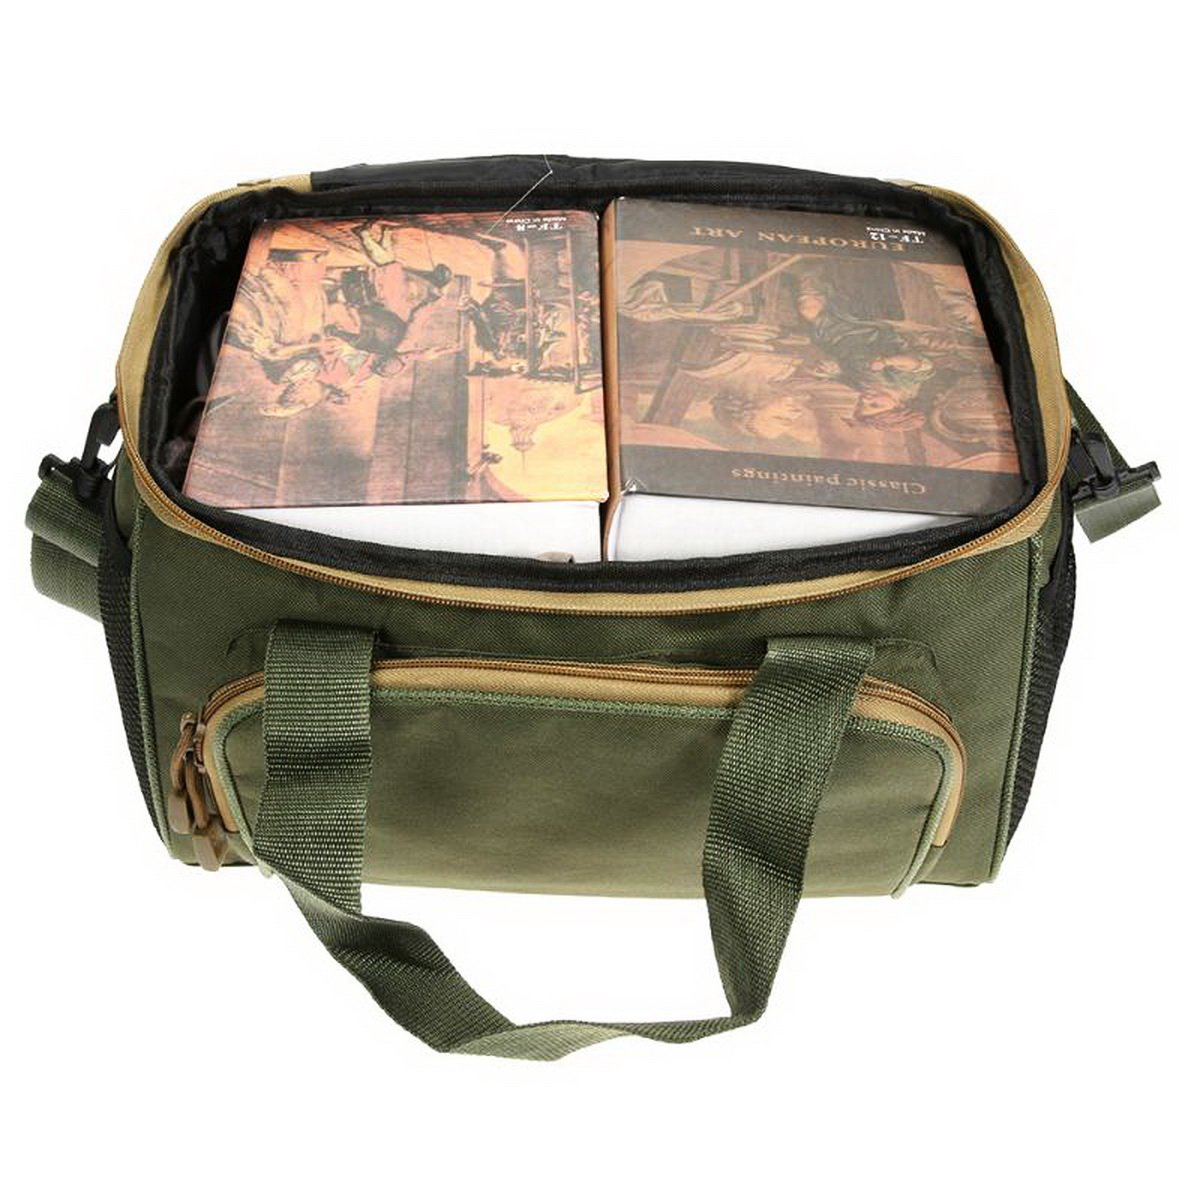 Ure Green Army Fishing Multi-Functional Outdoor Waist Shoulder Fishing Storage Bag